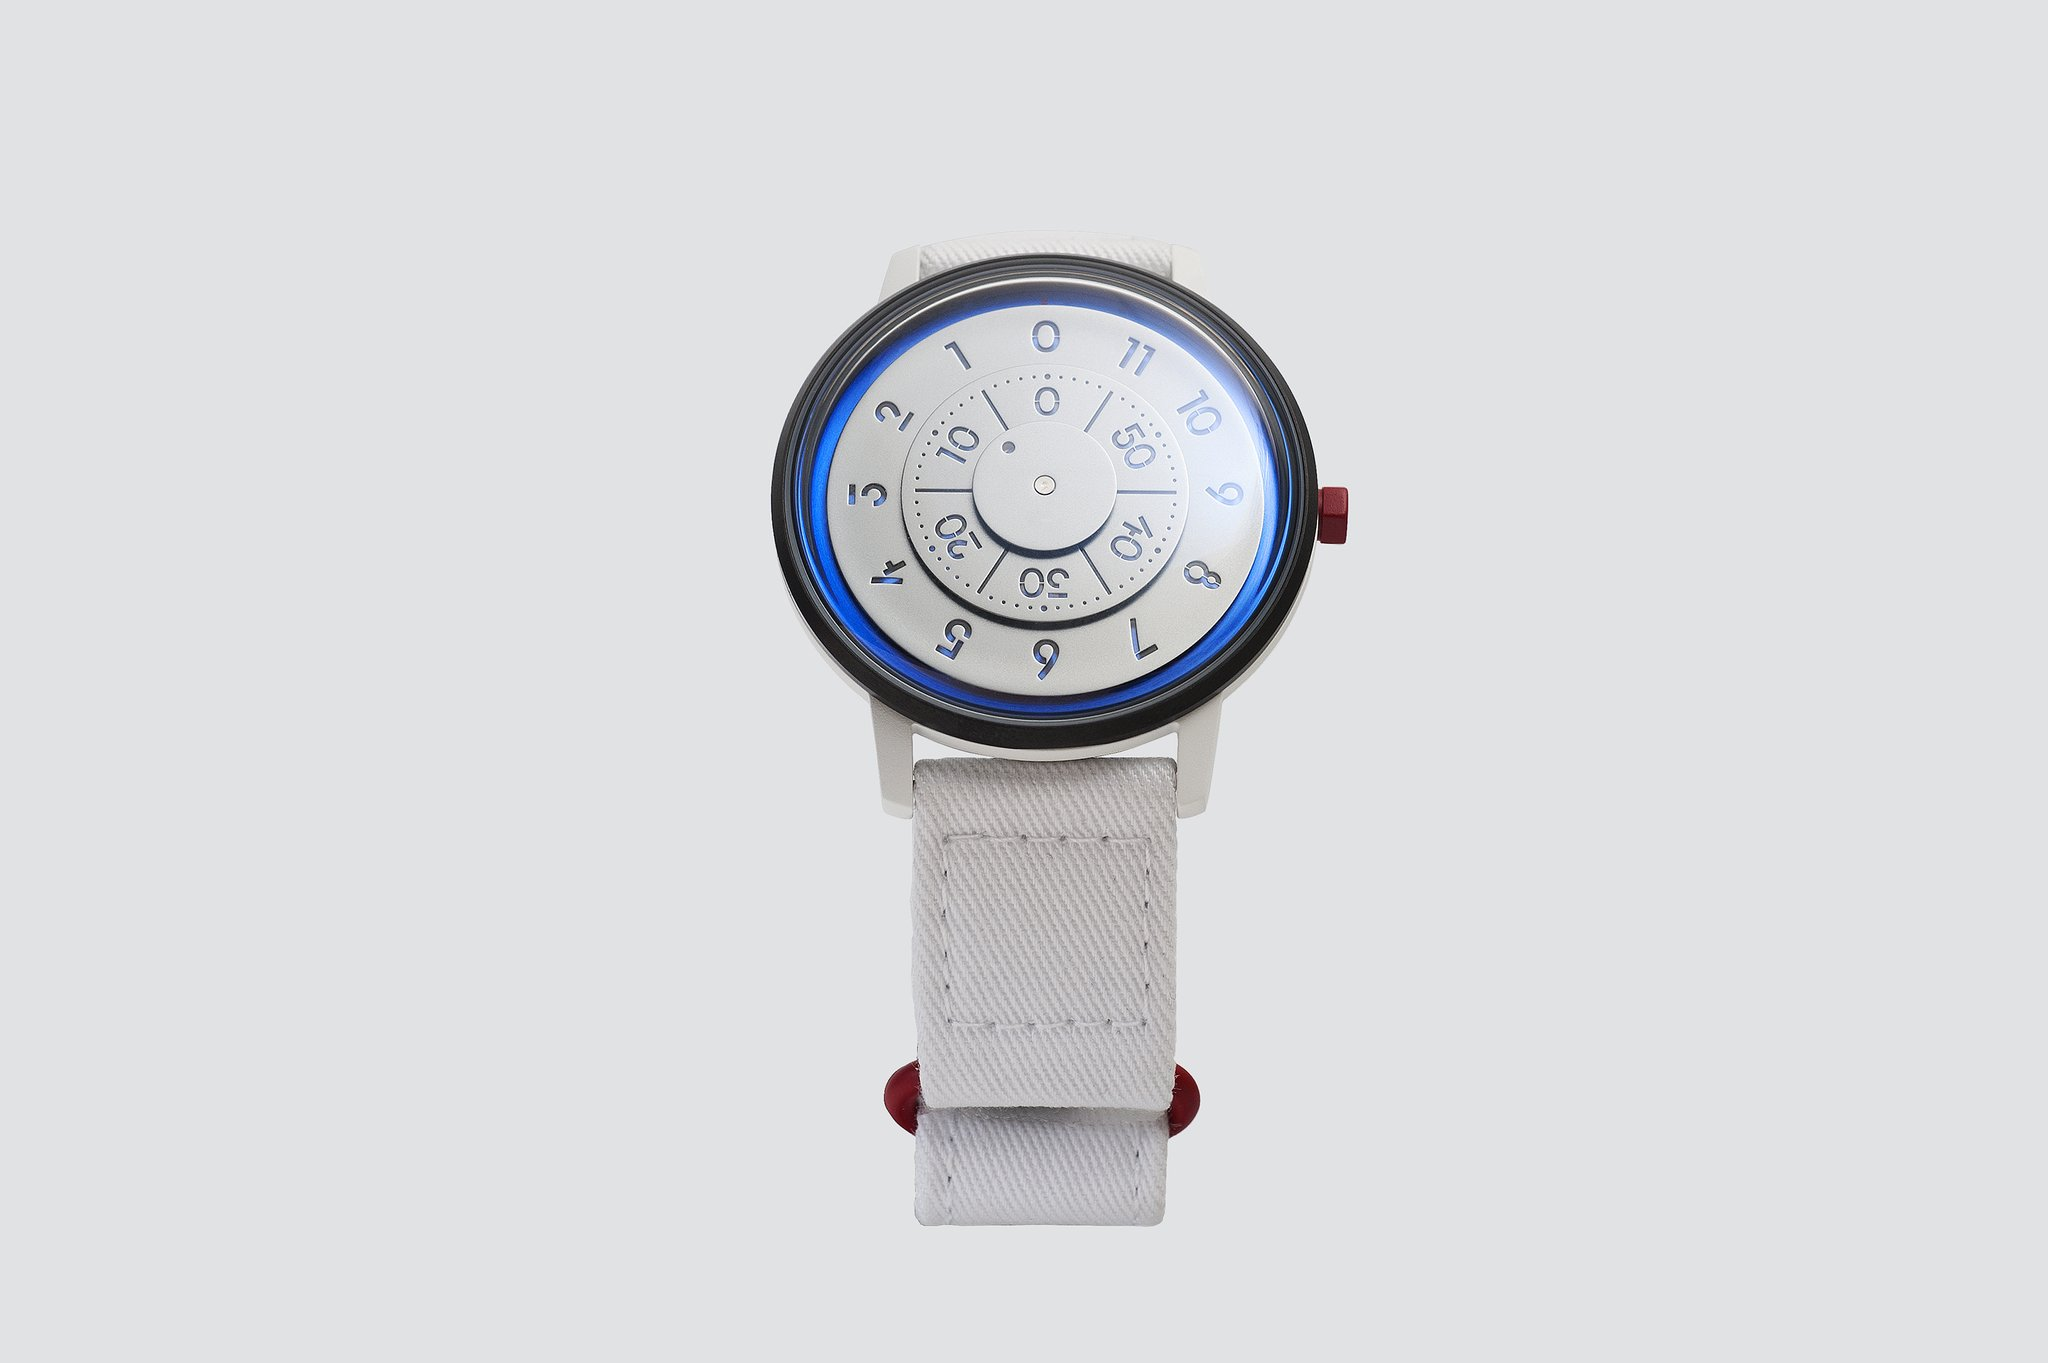 Anicorn x NASA limited edition watch